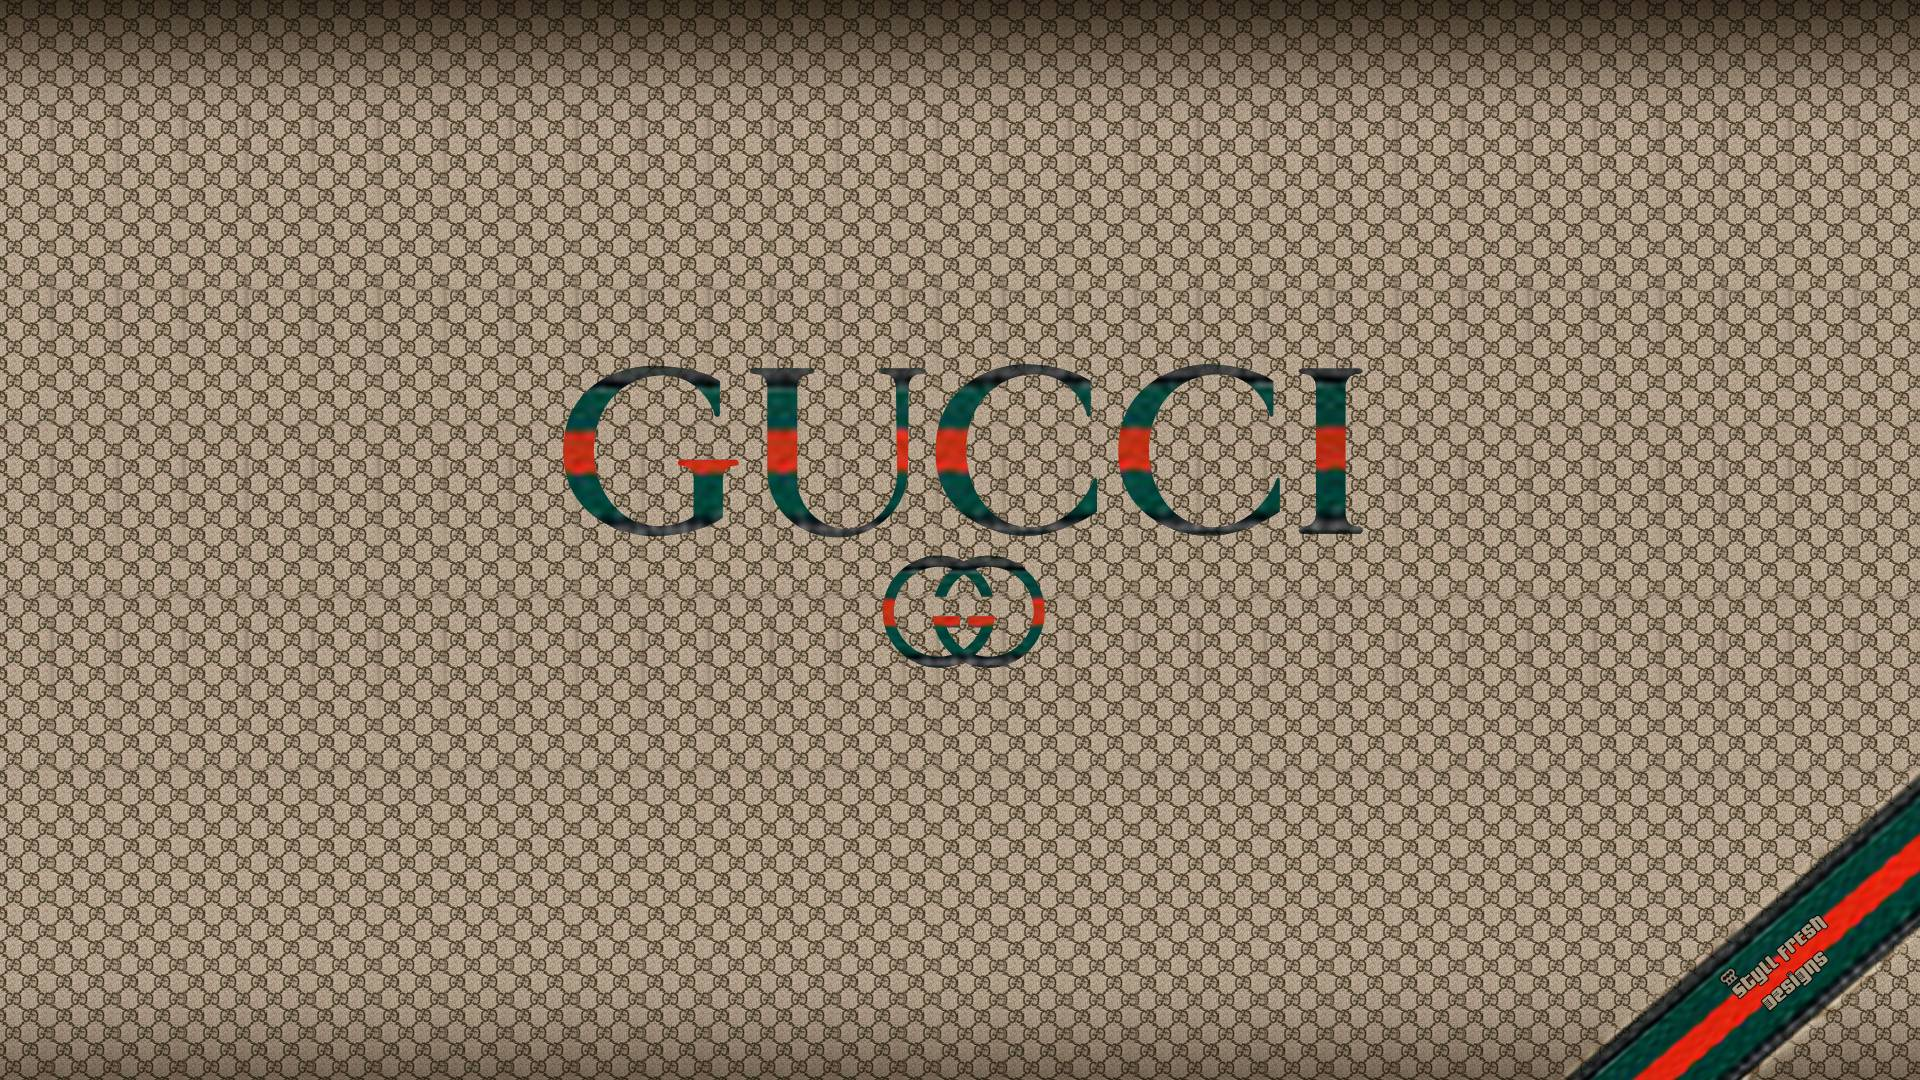 Fonds d'écran Gucci : tous les wallpapers Gucci